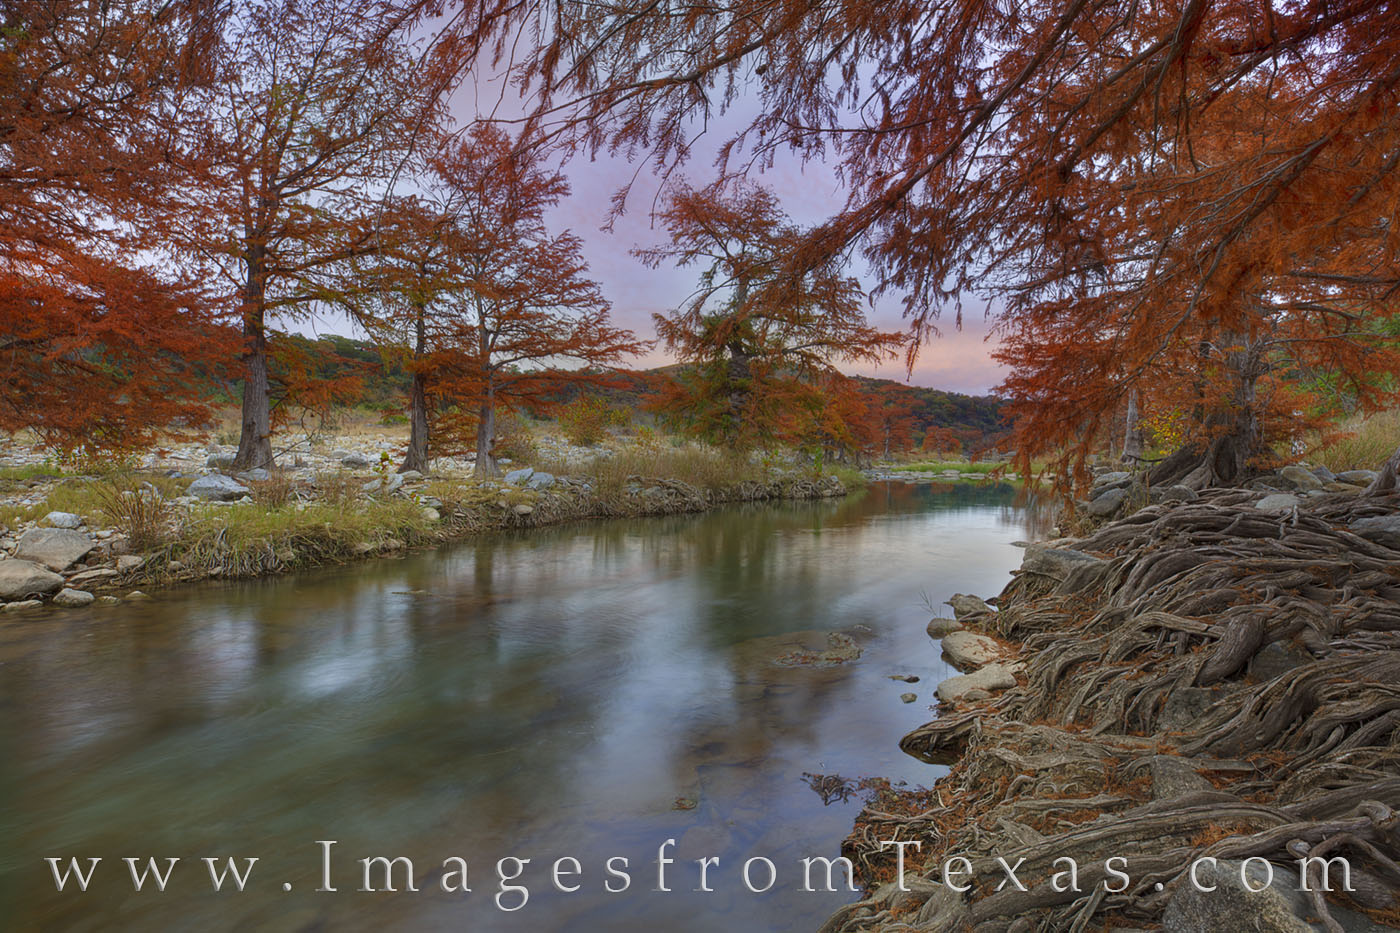 texas hill country, pedernales river, fall colors, autumn colors, cypress, texas fall colors, texas autumn, pedernales falls, texas state parks, photo